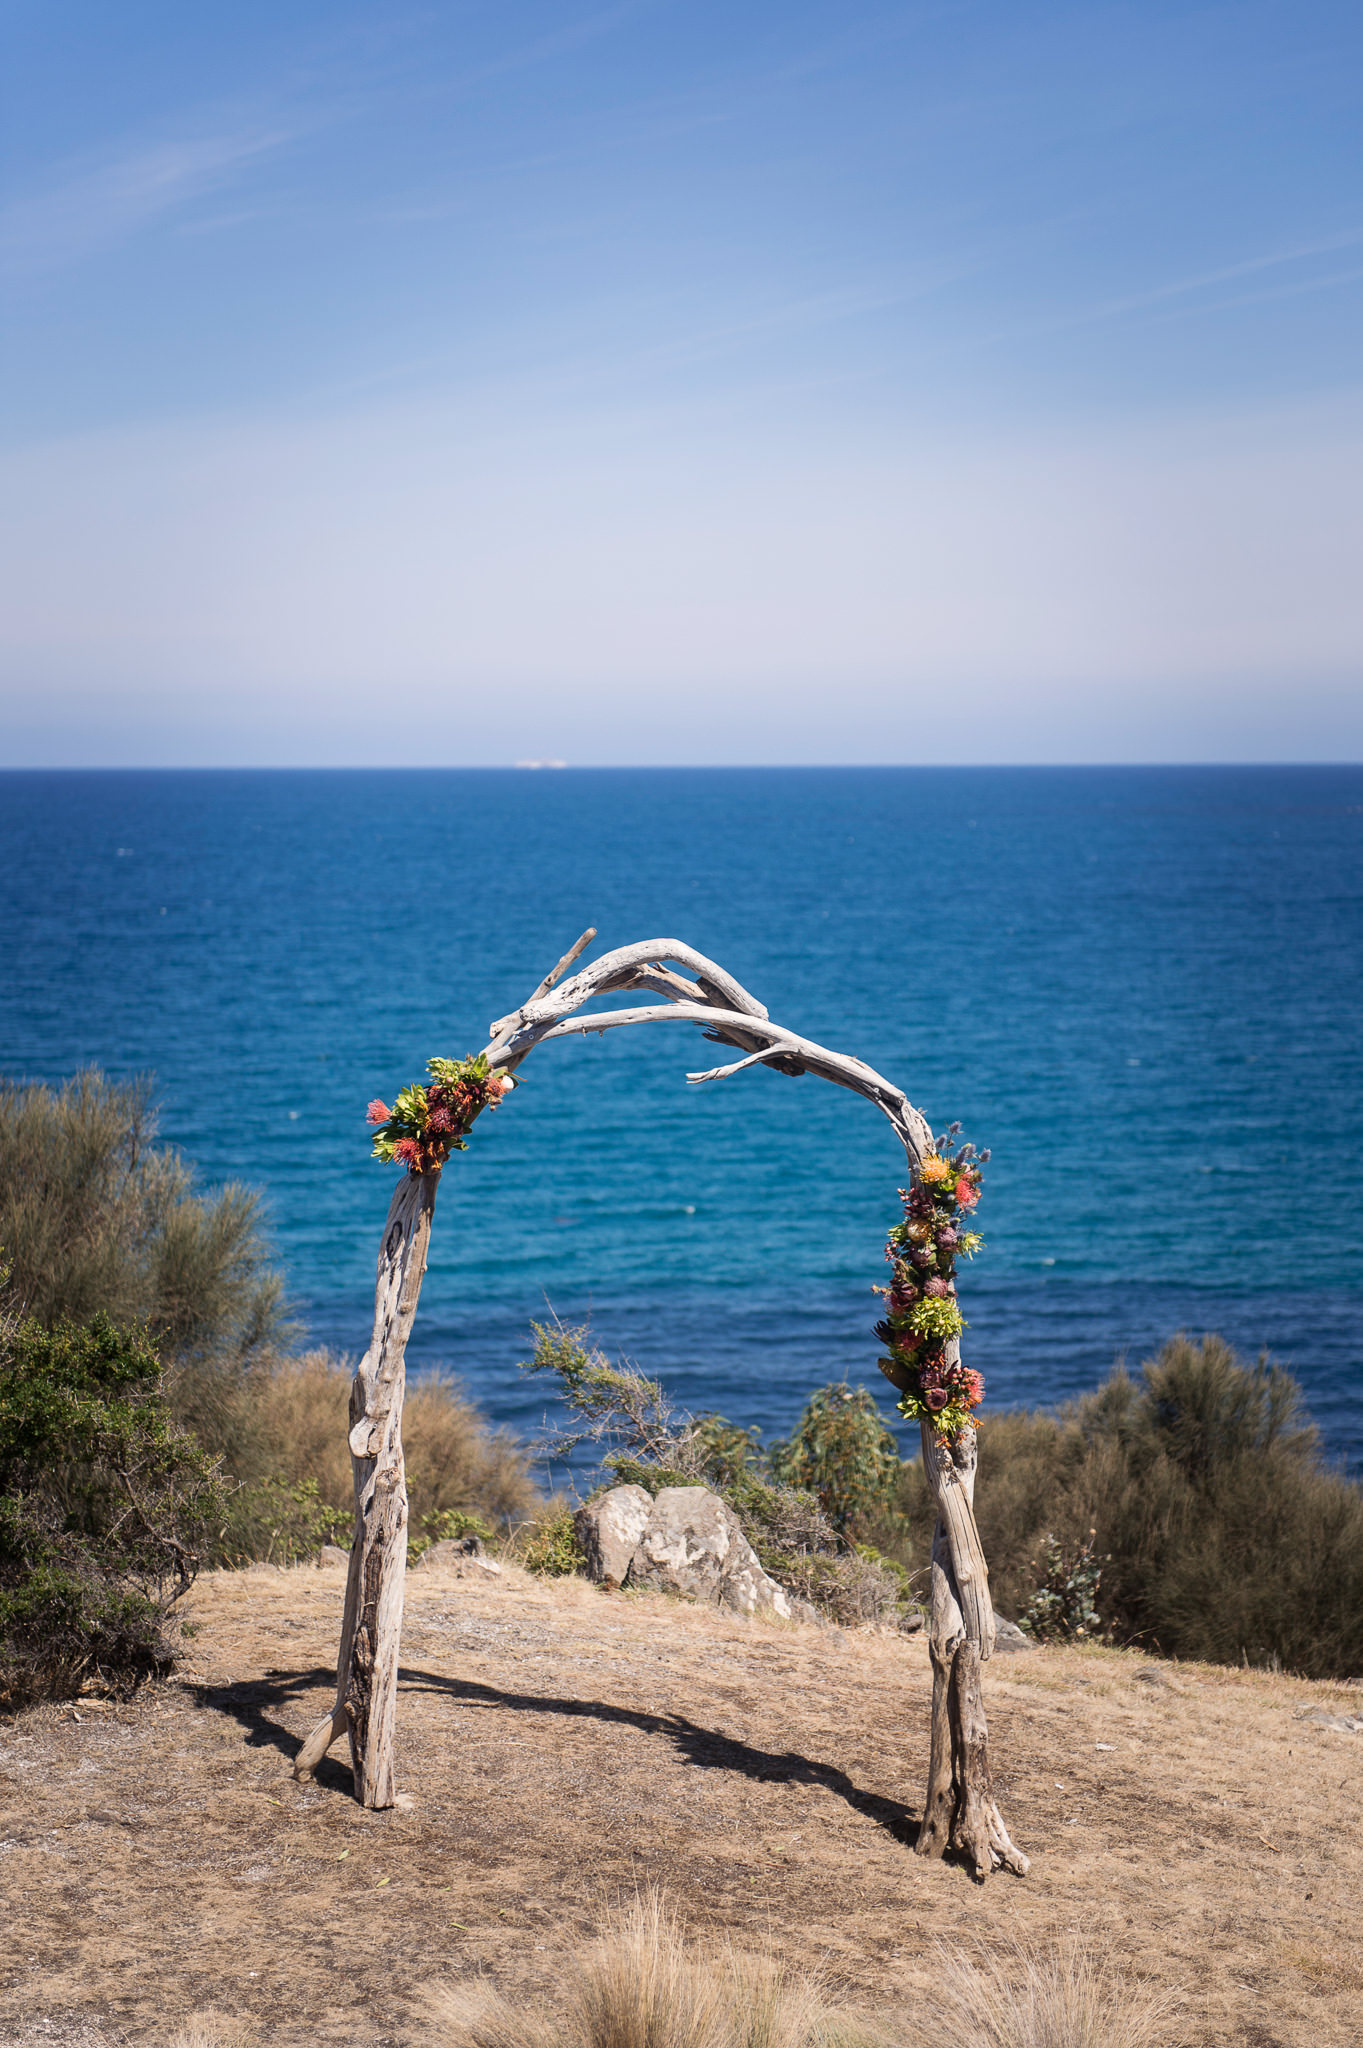 Custom made driftwood arch sourced from the property's private beach